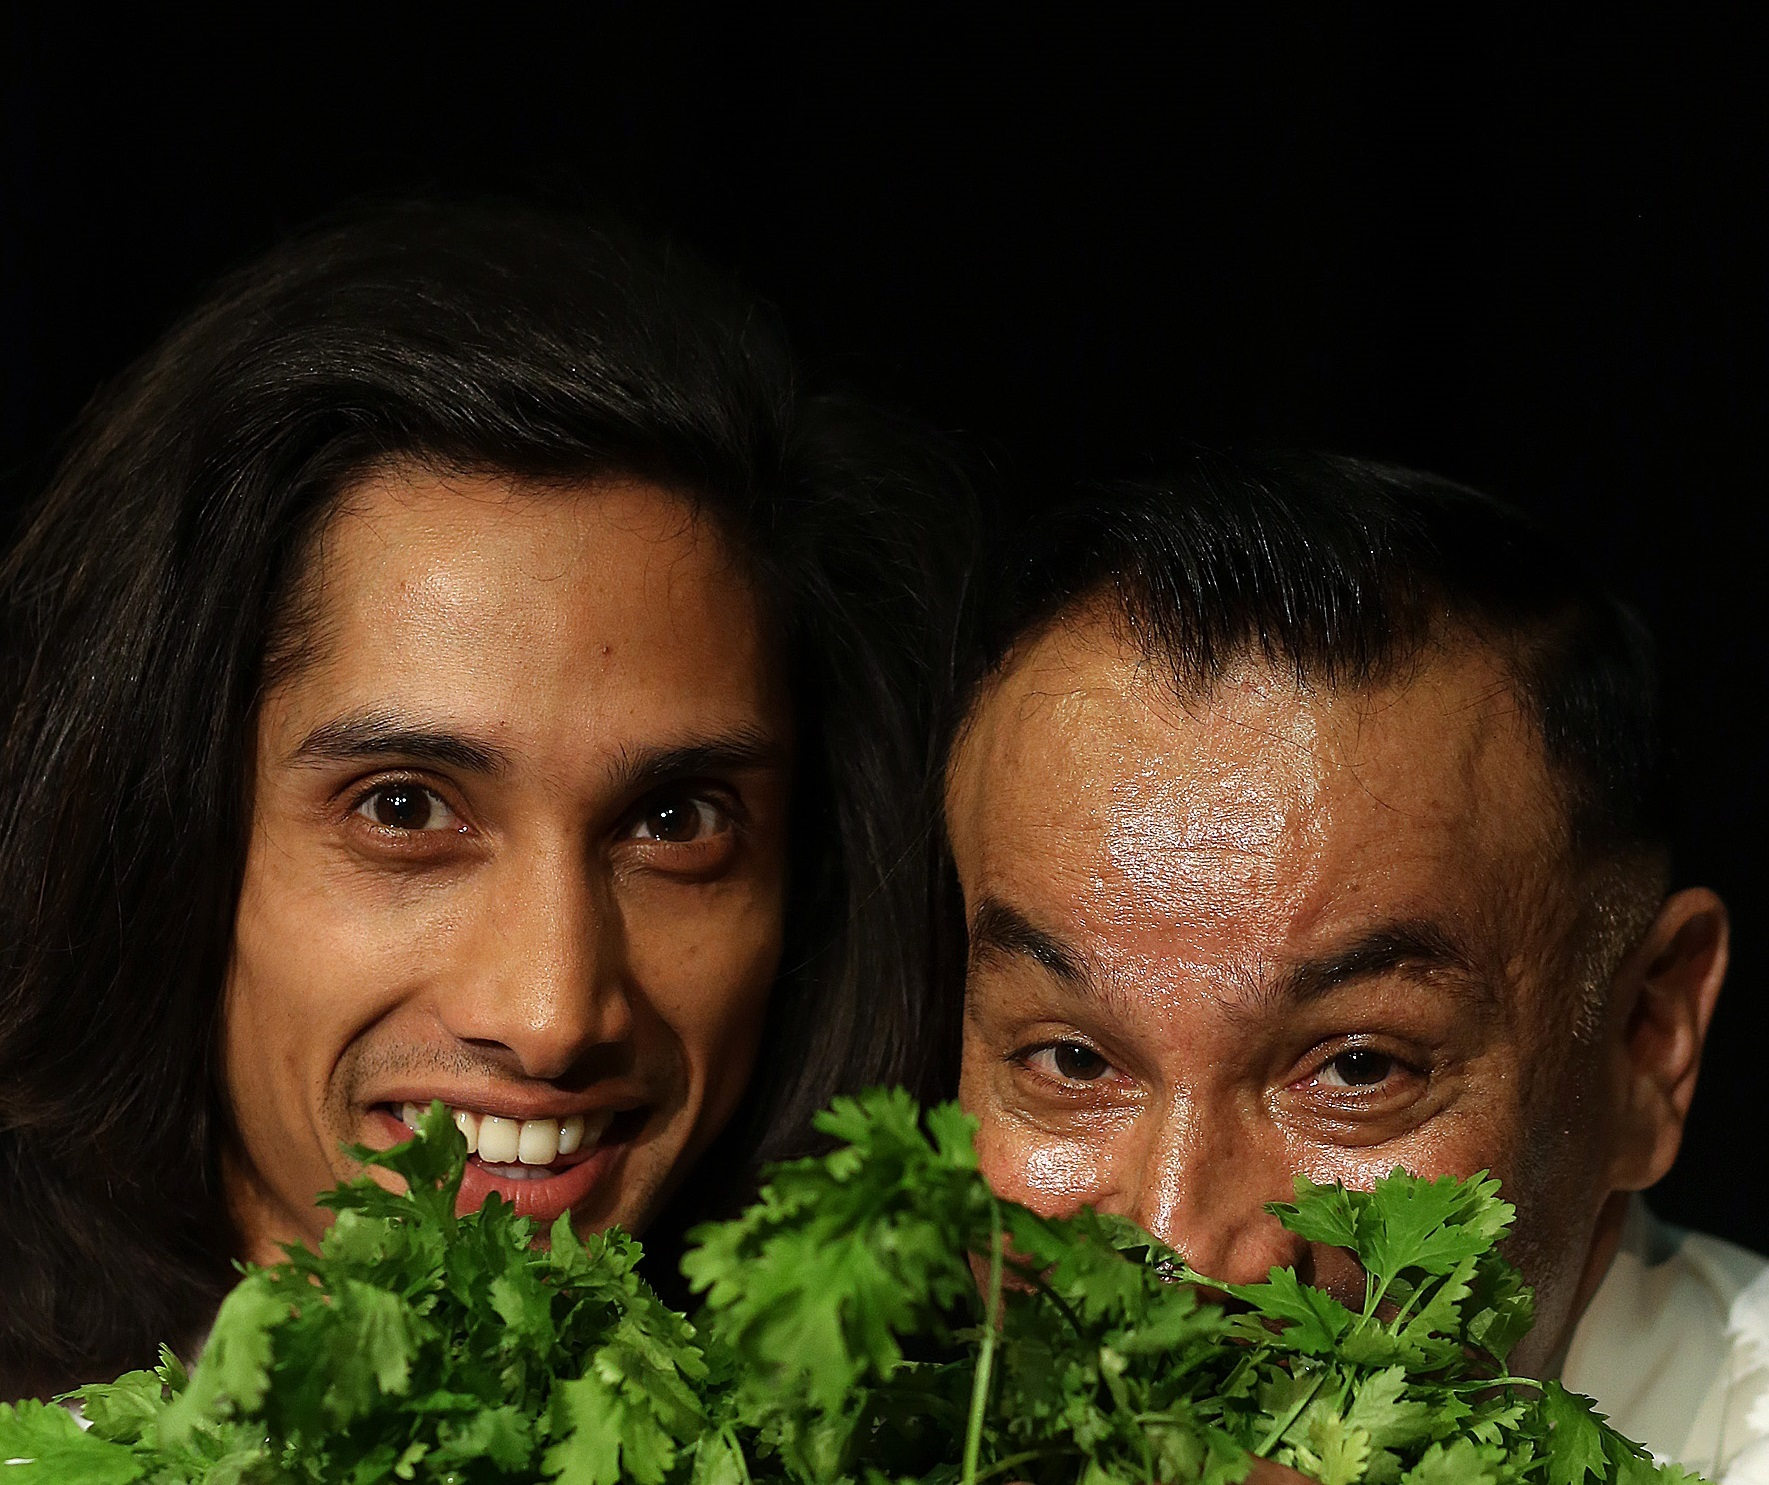 Kamal Kaan and Rohit Gokani who play father and son Abdul and Khalid in Nick Ahad's play The Chef Show, heading to Kendal's Brewery Arts Centre on Wednesday, February 21 (8pm). Pic Dave Charnley